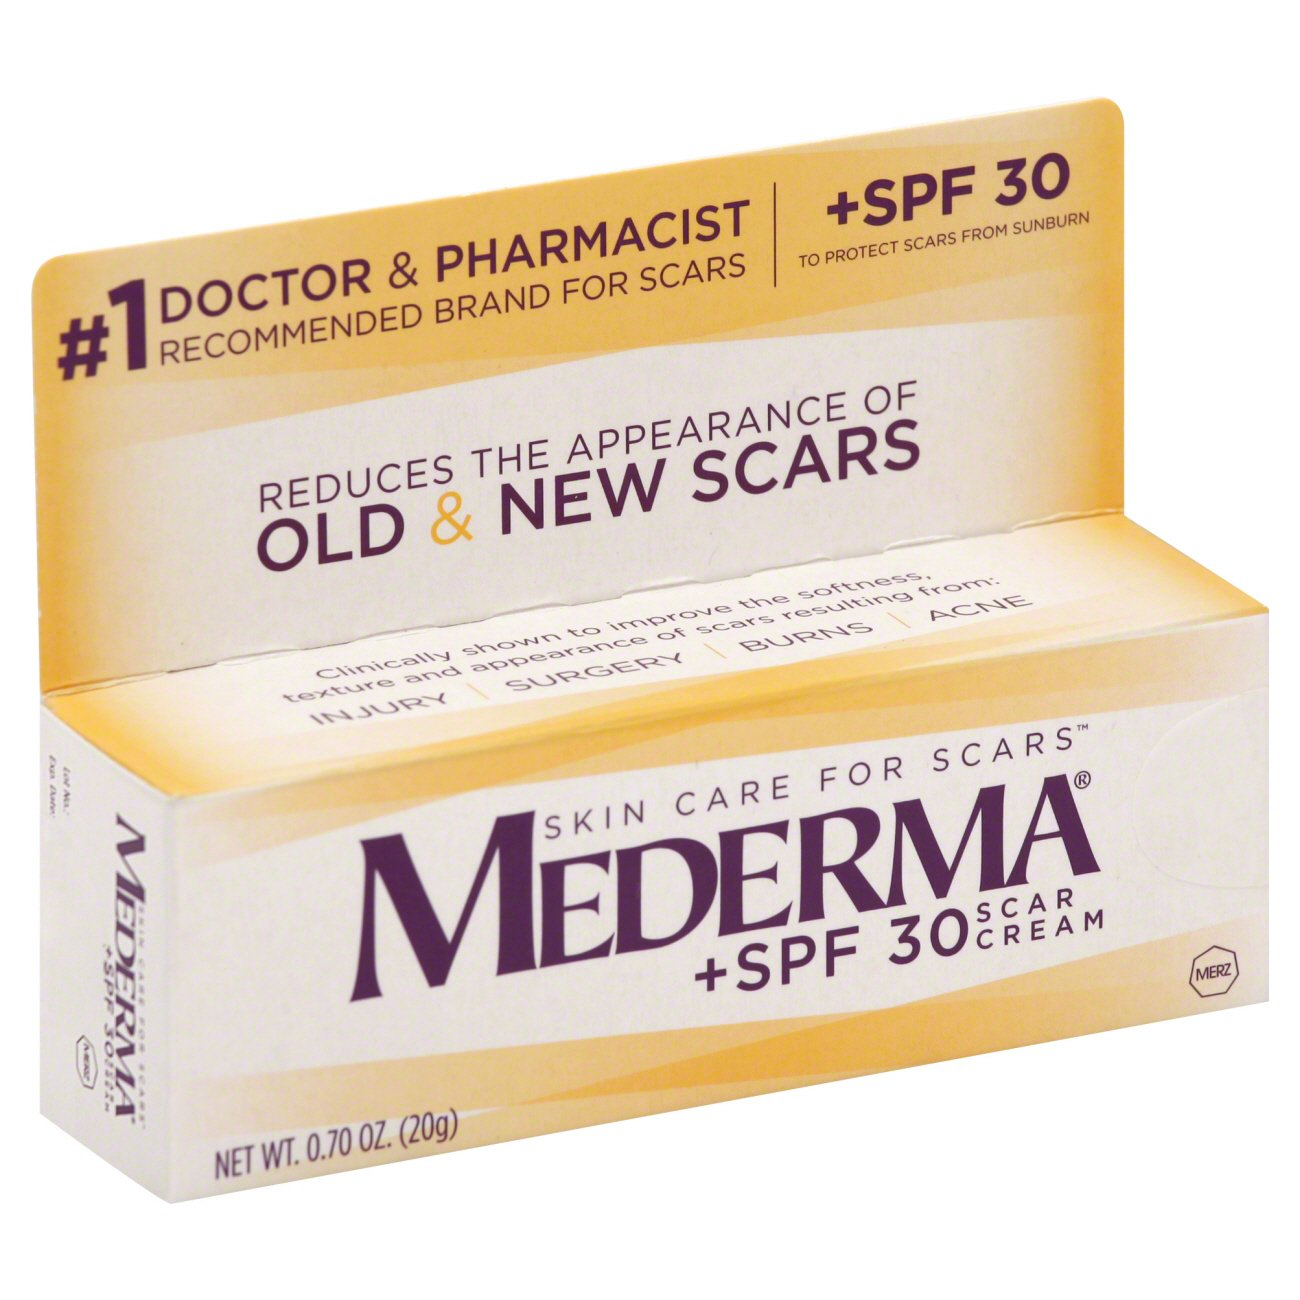 Mederma Scar Cream Spf 30 Sunscreen Shop Facial Masks Treatments At H E B